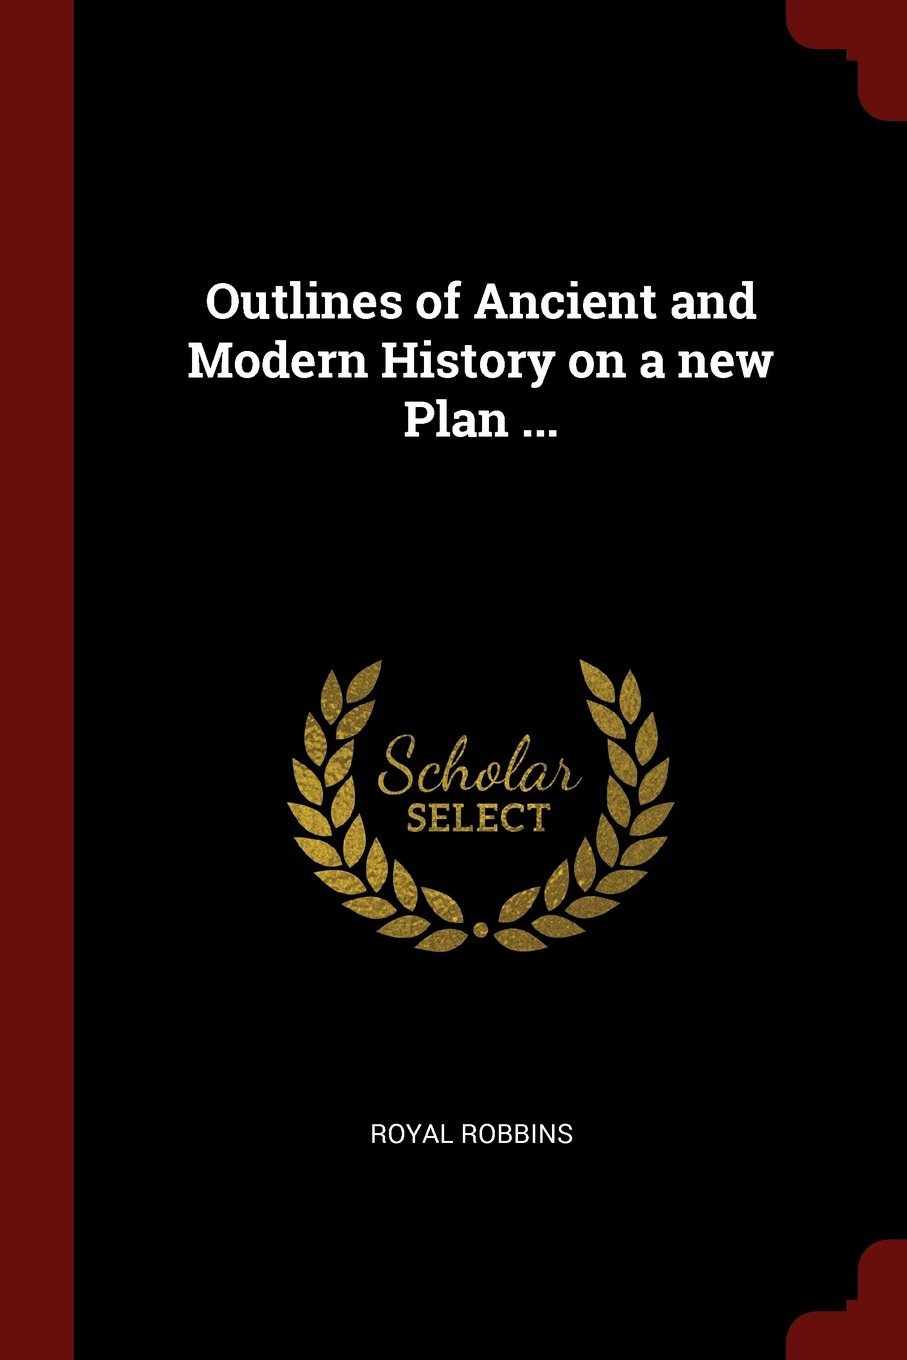 Read Online Outlines of Ancient and Modern History on a new Plan ... pdf